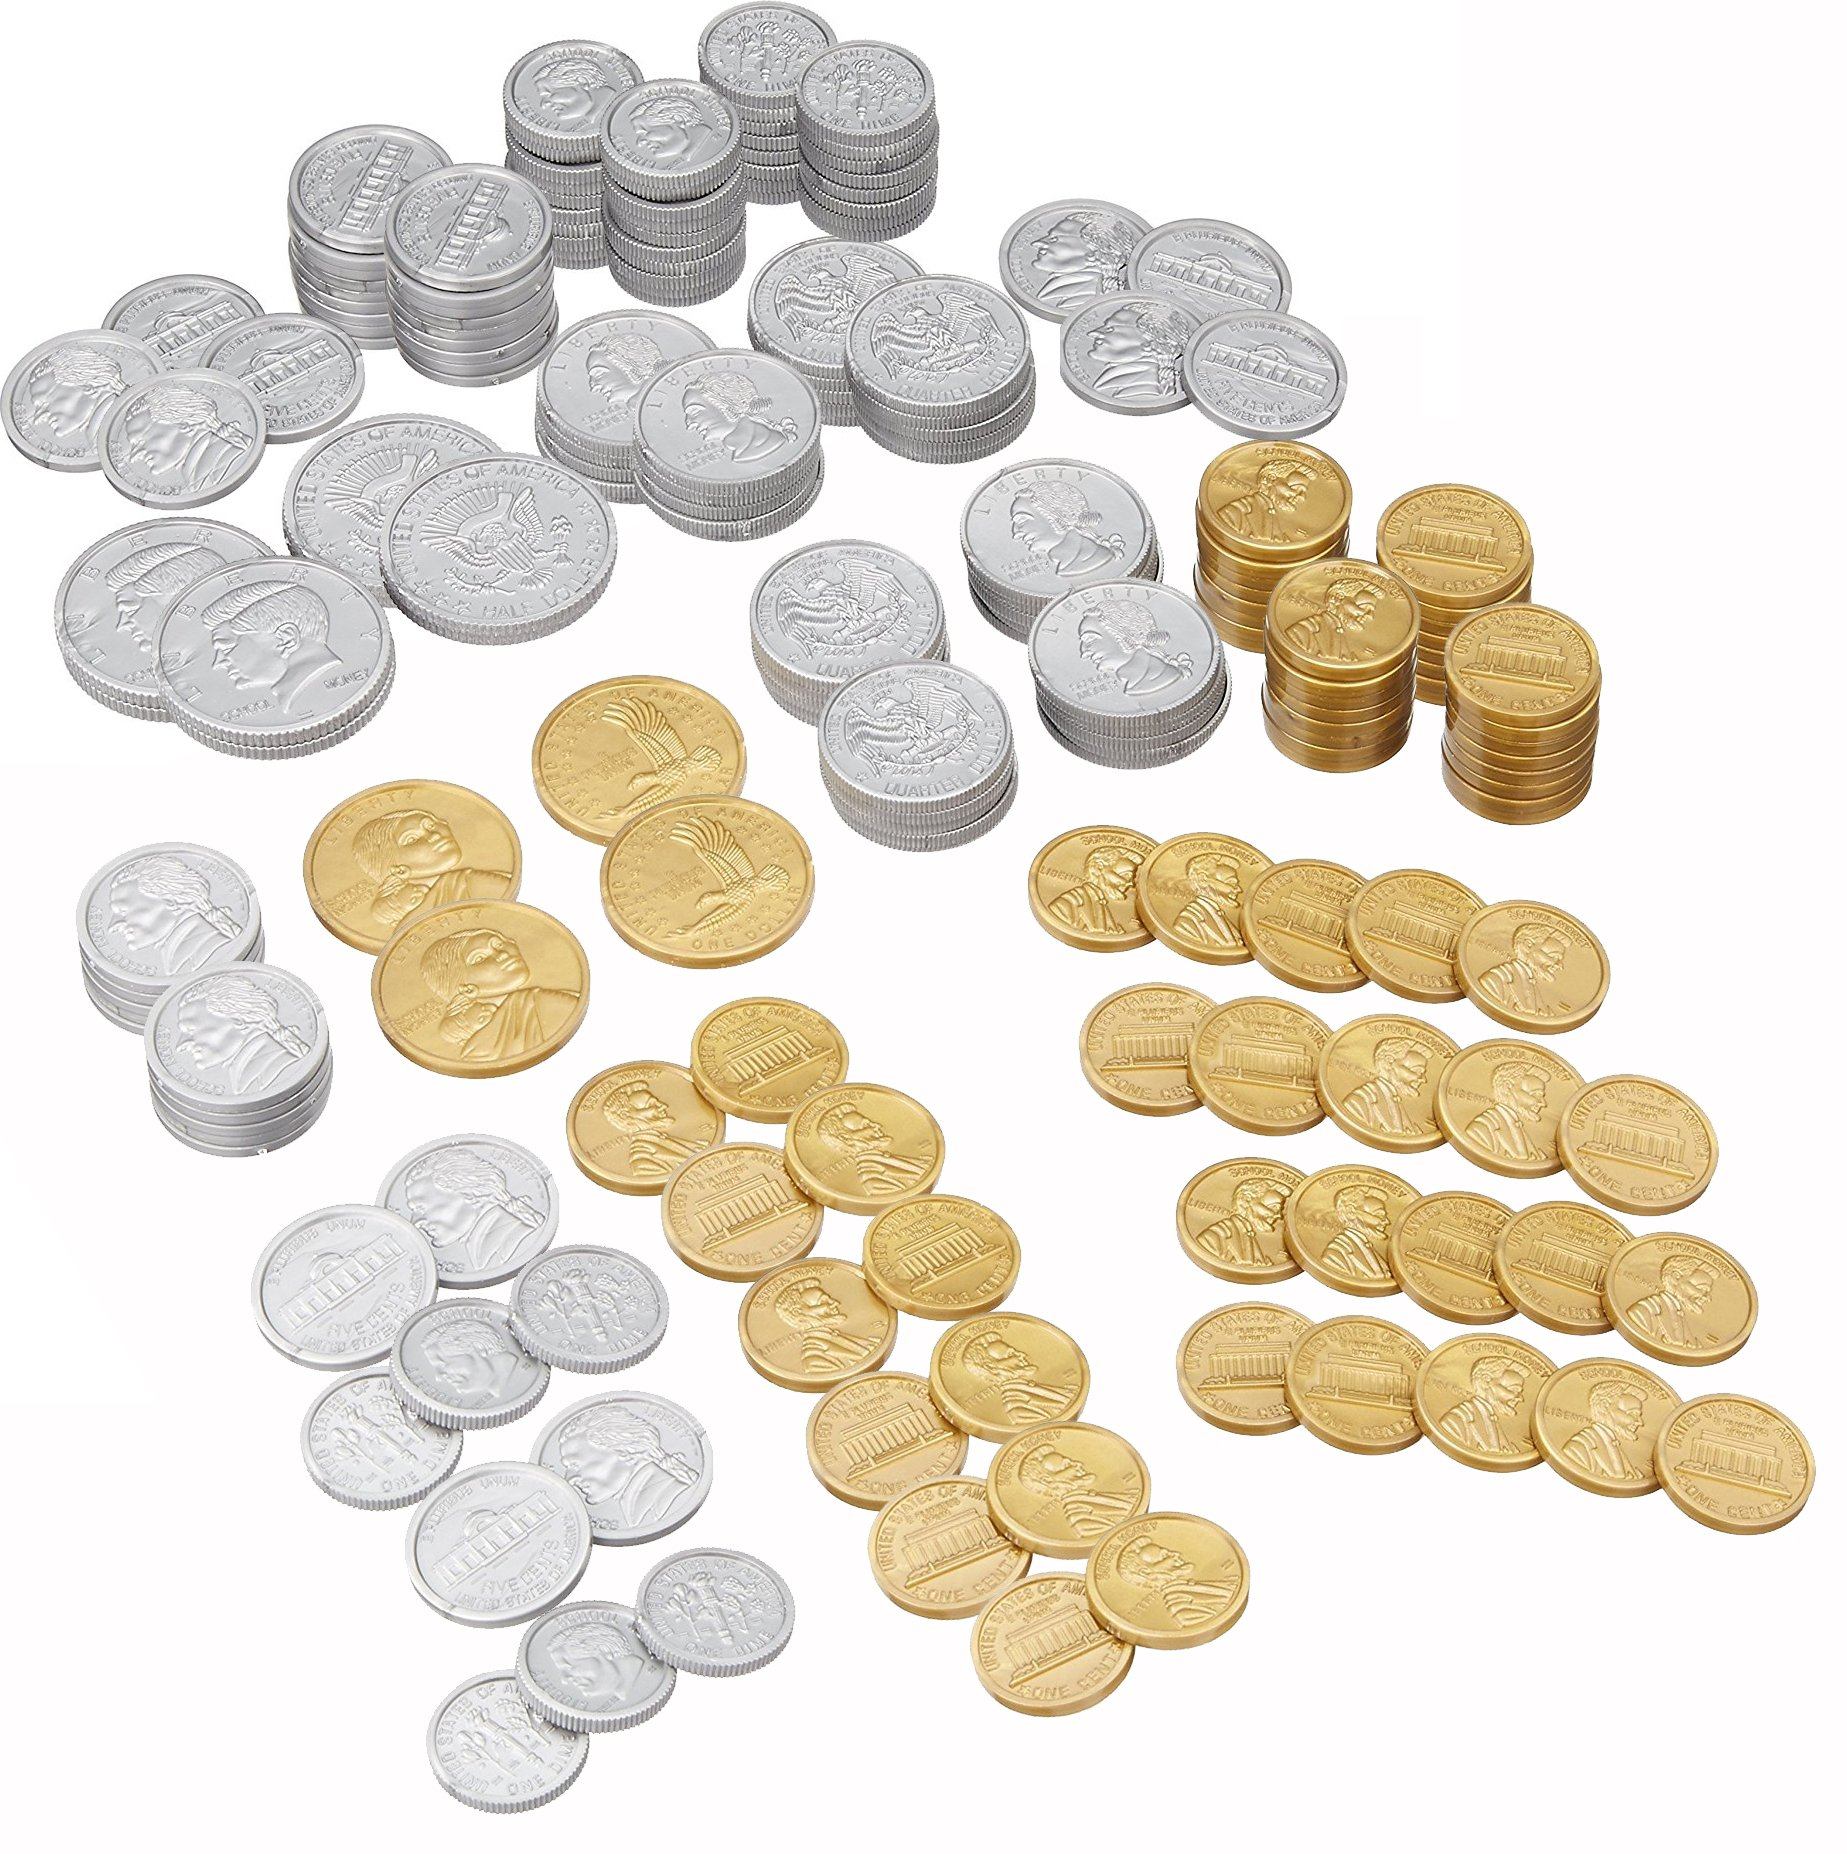 Play Money Coin Set Mega Value Pack Contains at least: 60 pennies, 40 each of Nickles, Dimes, Quarters, 8 Half-Dollars, 4 Sacageweas, with InPrimeTime Storage Jar